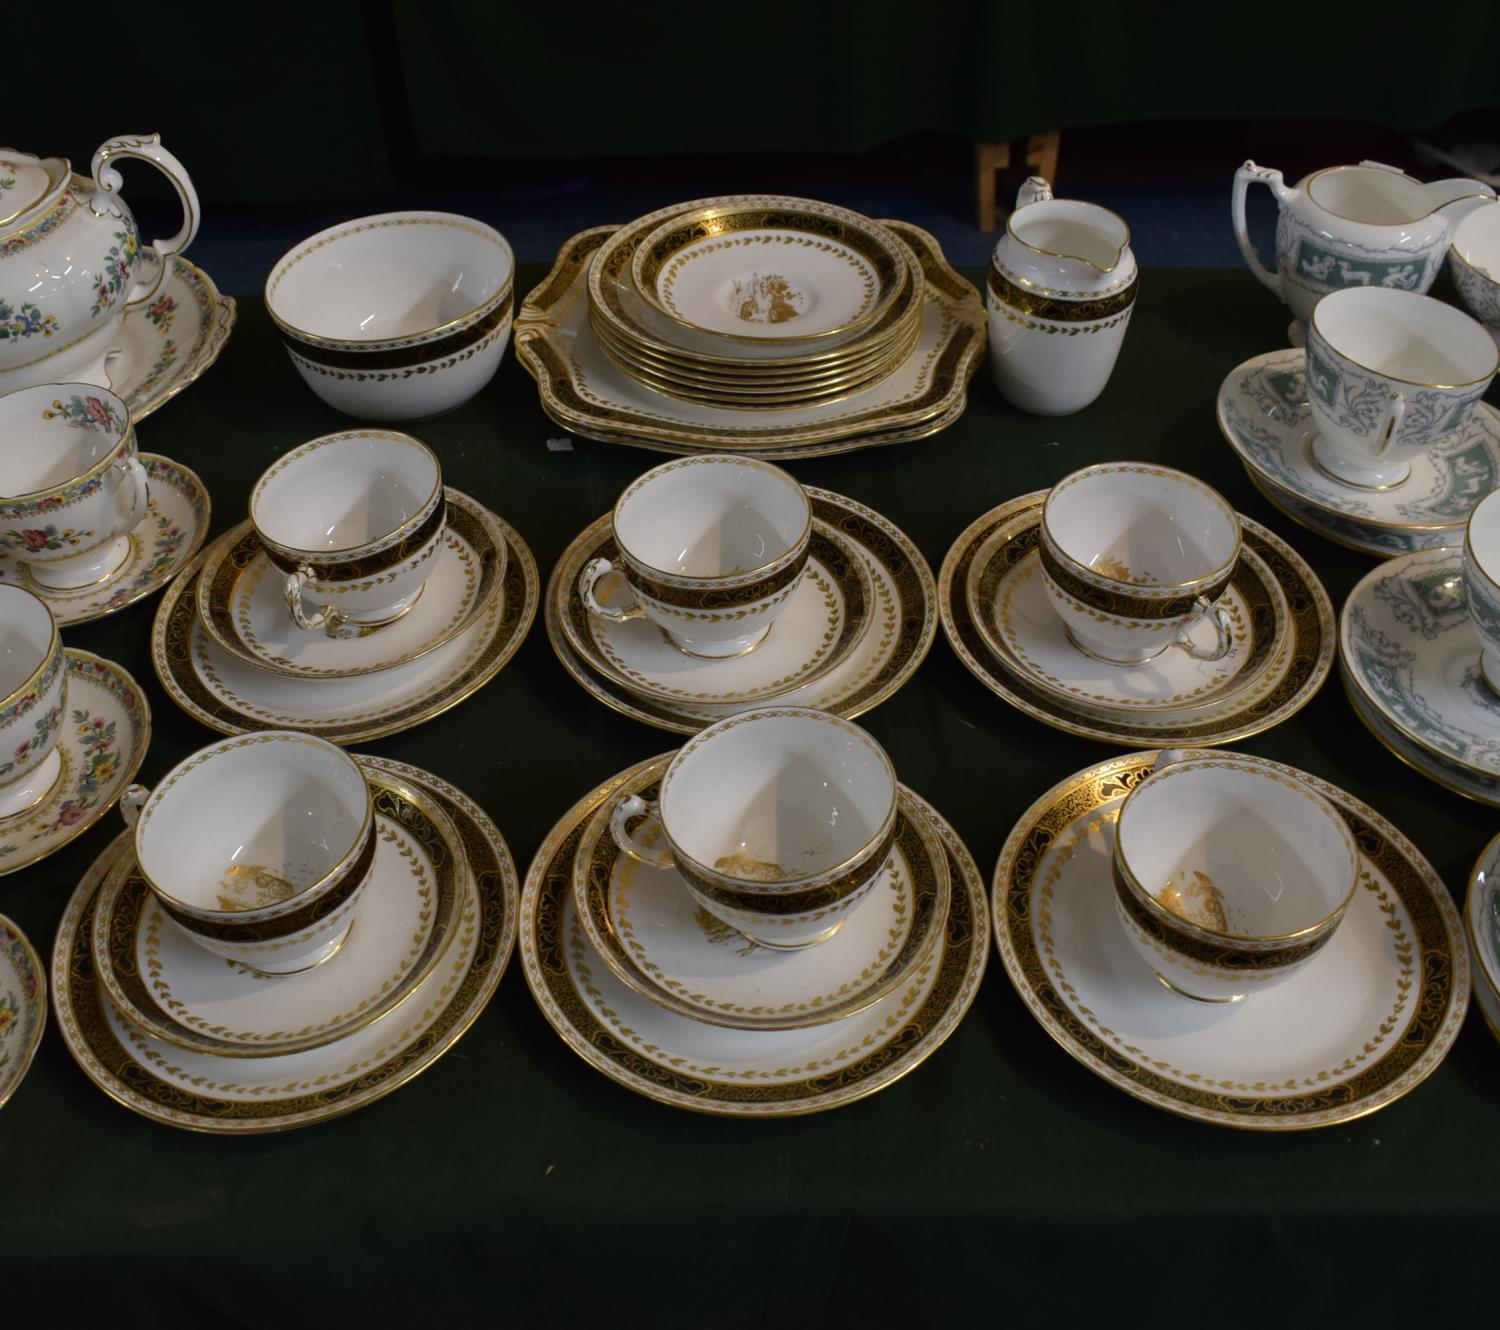 Lot 225 - A Collection of Tuscan Fisherman Pattern Teawares to Include Six Trios, Six Side Plates, Two Cake